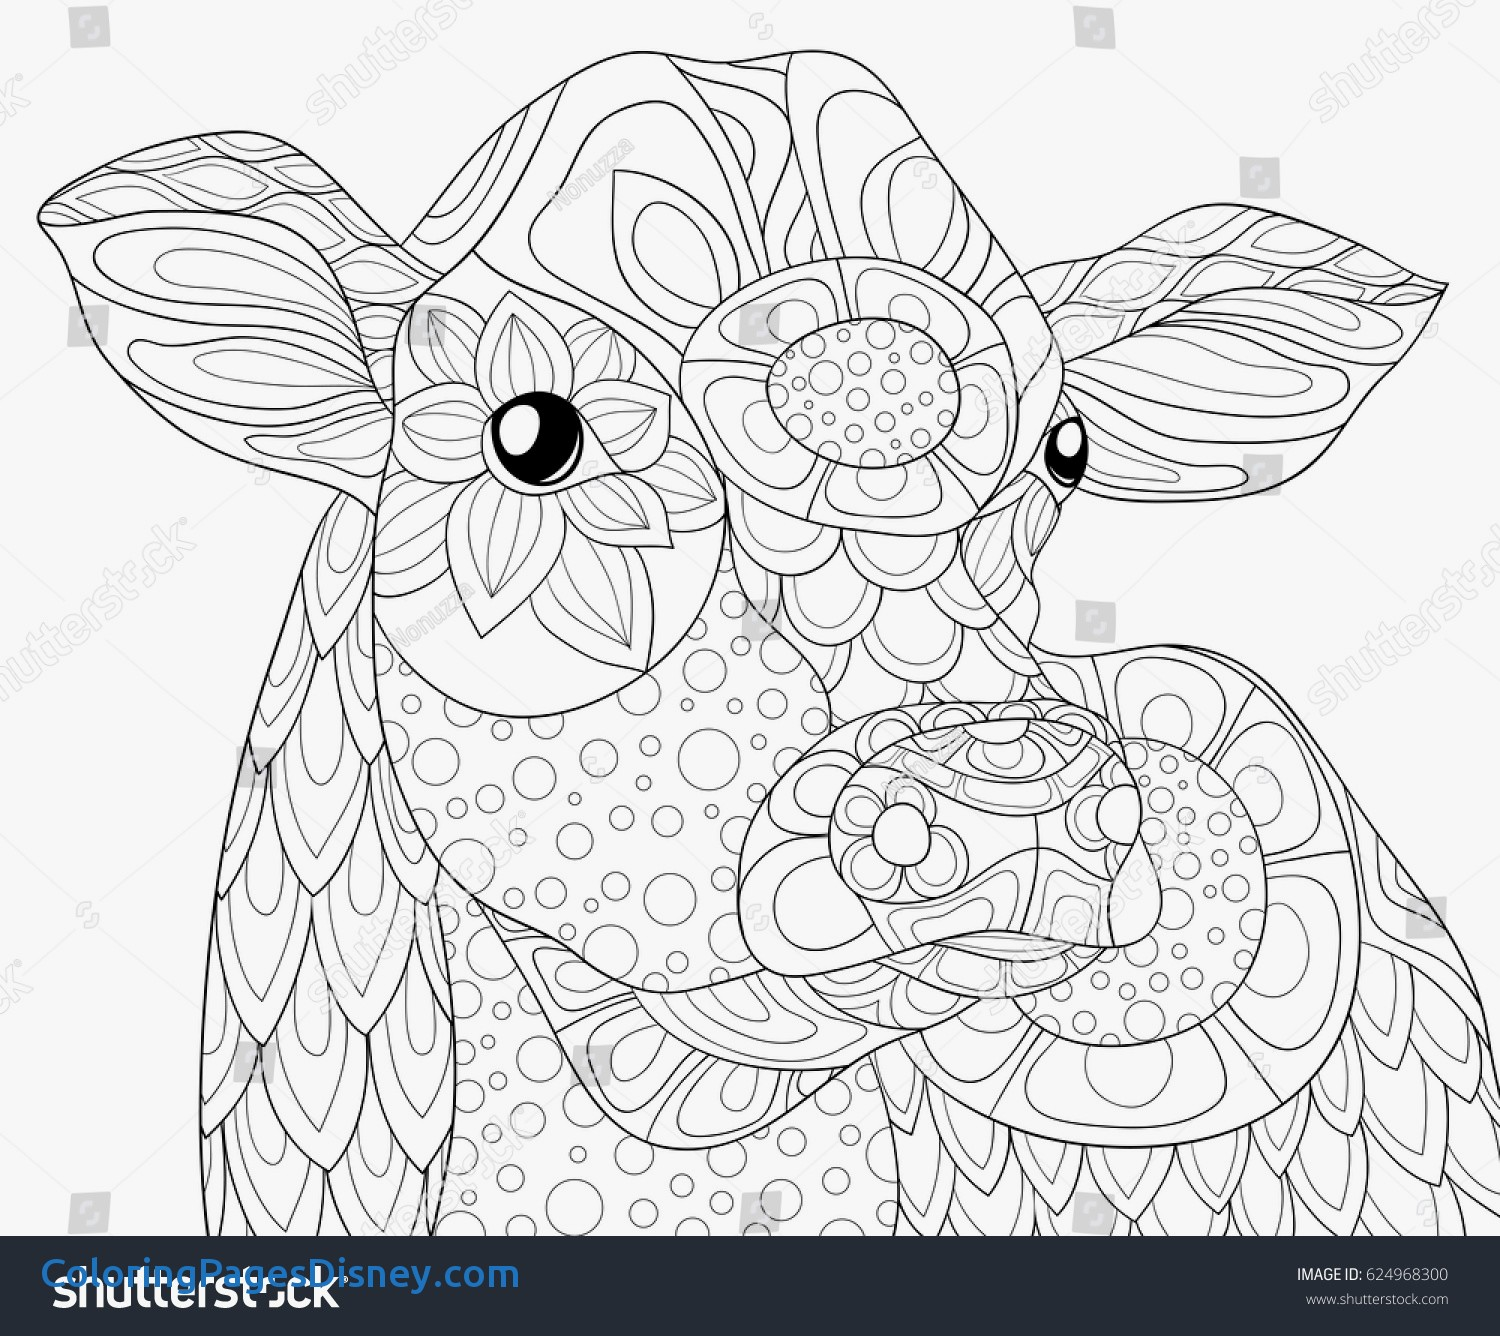 1500x1336 Hydrangea Coloring Pages Fresh Adult Coloring Page Cow Zen Art